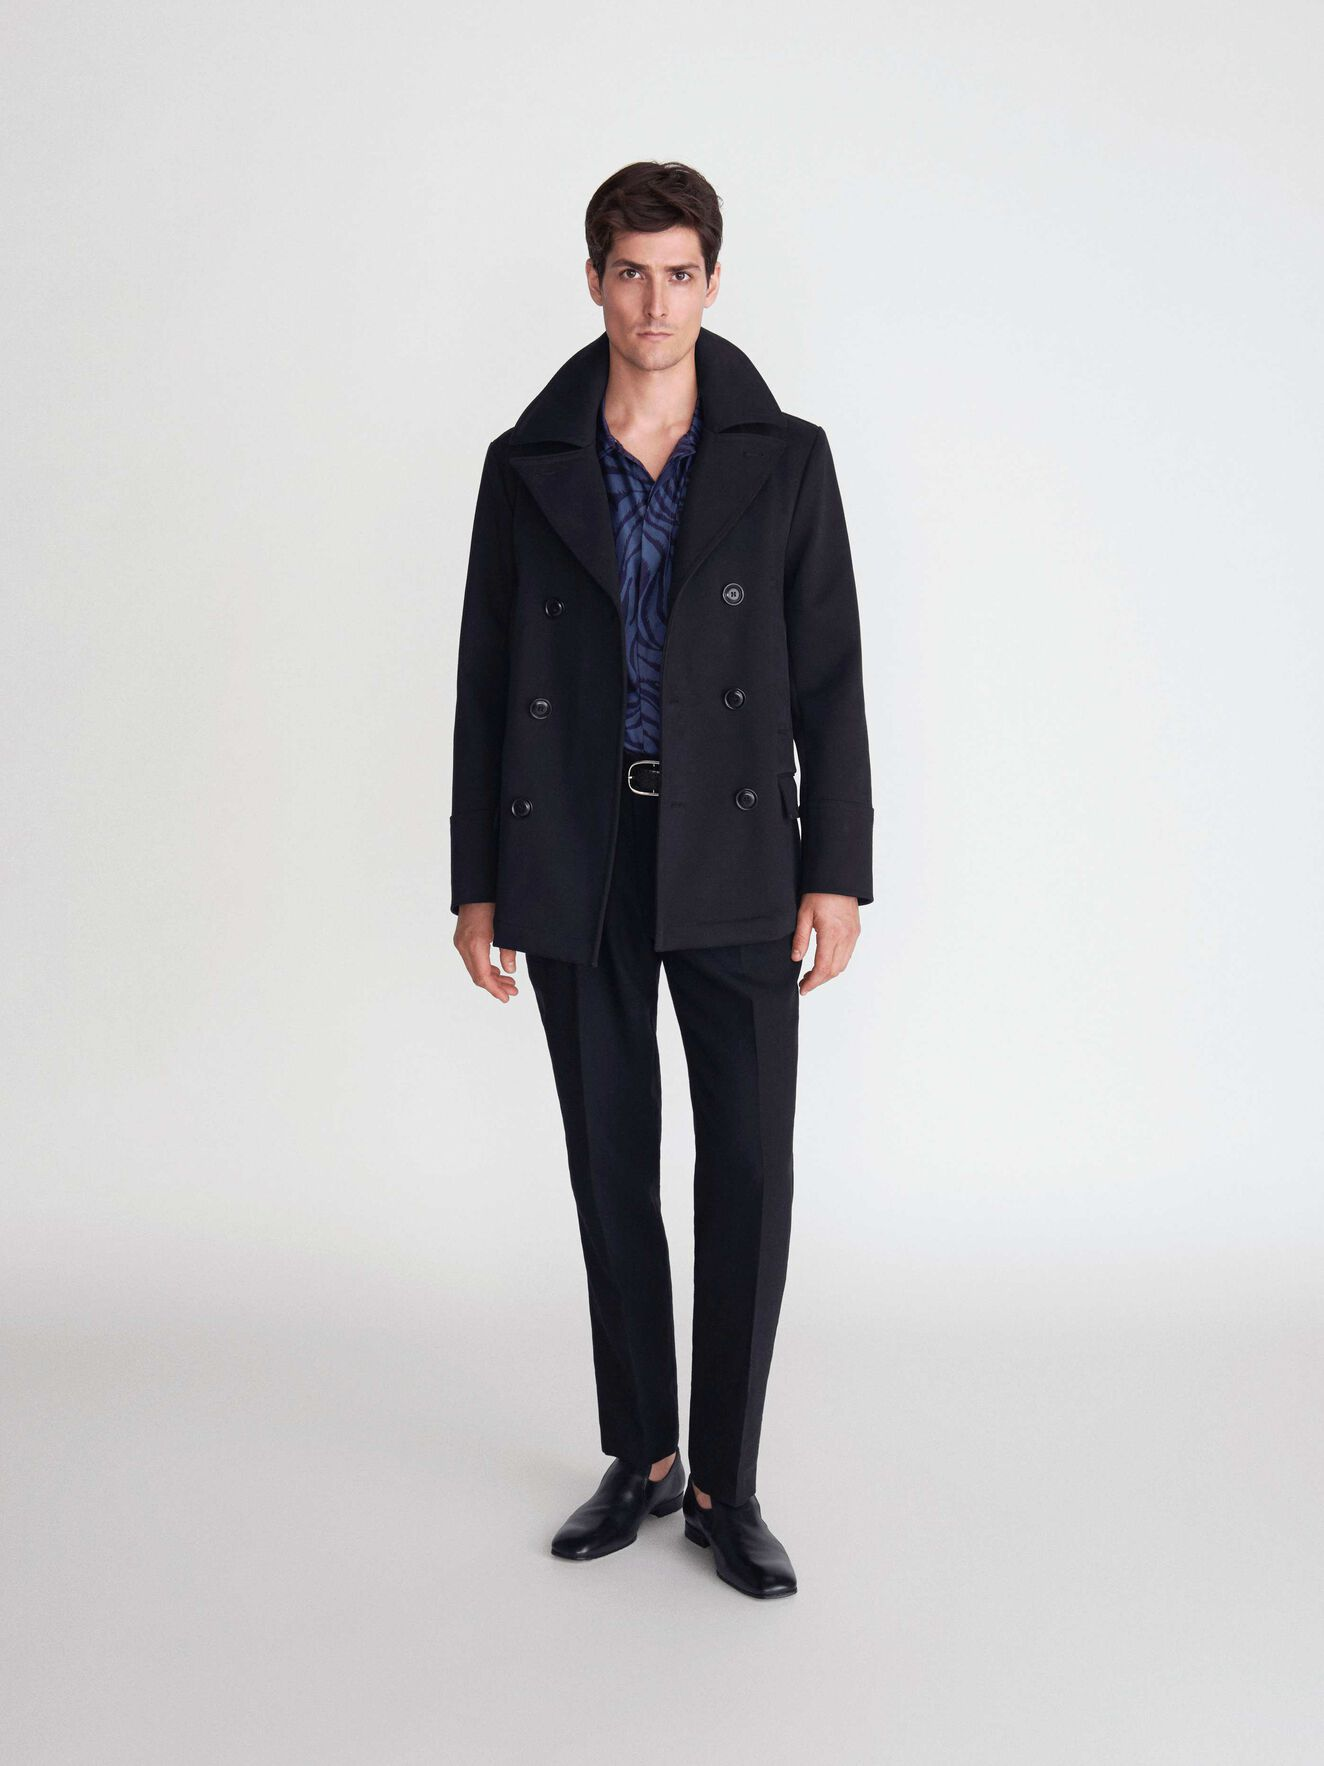 Odford Peacoat in Black from Tiger of Sweden